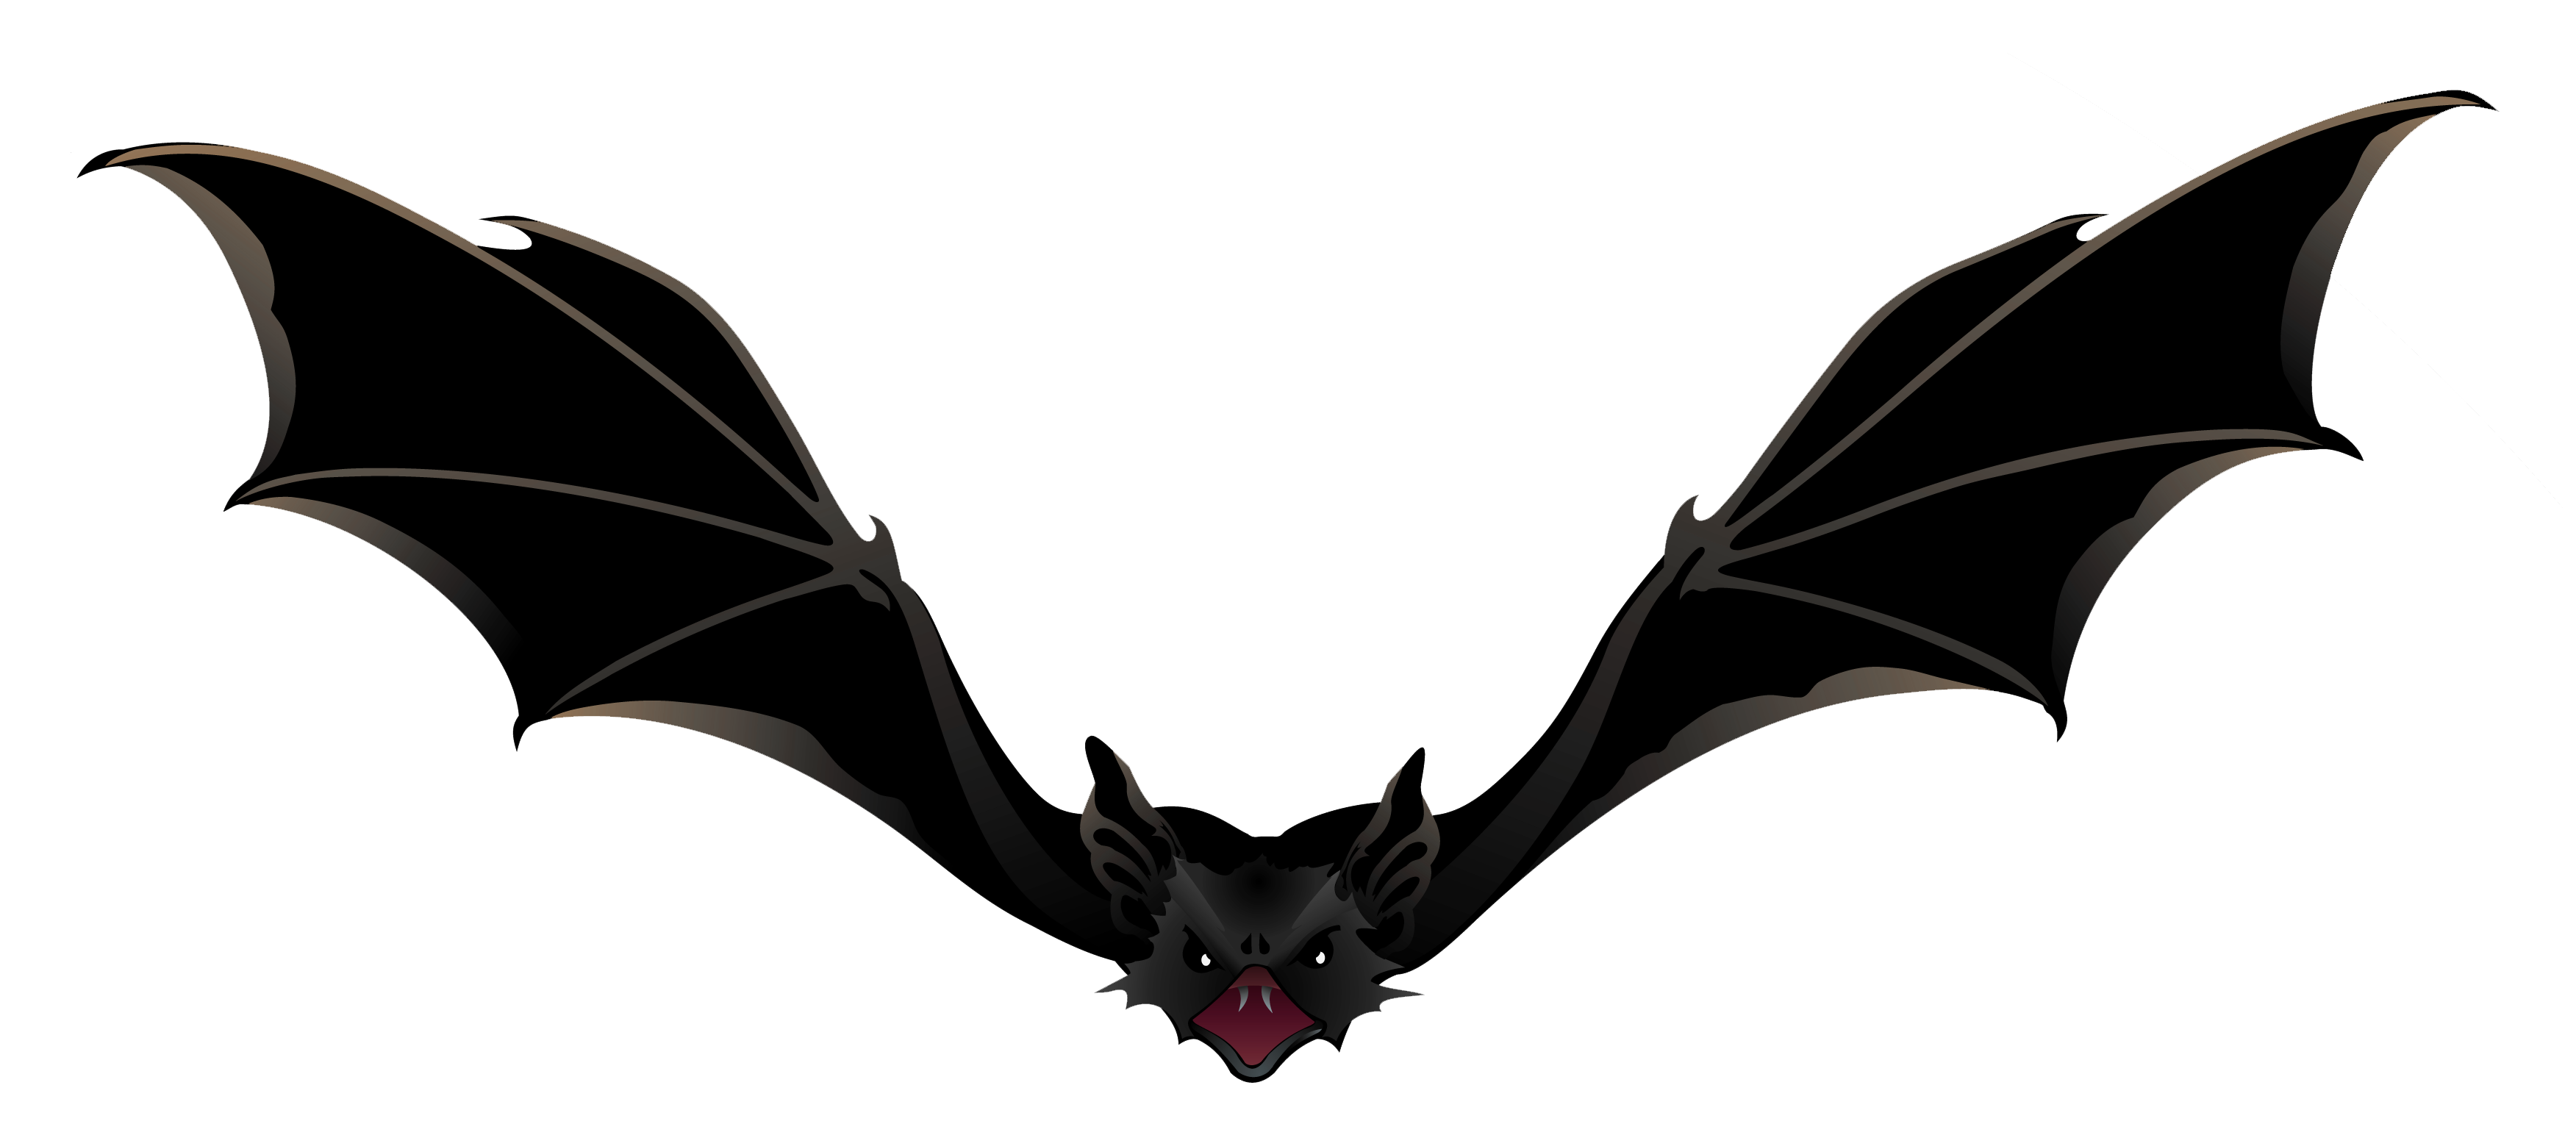 Free Bat Png - View full size ?